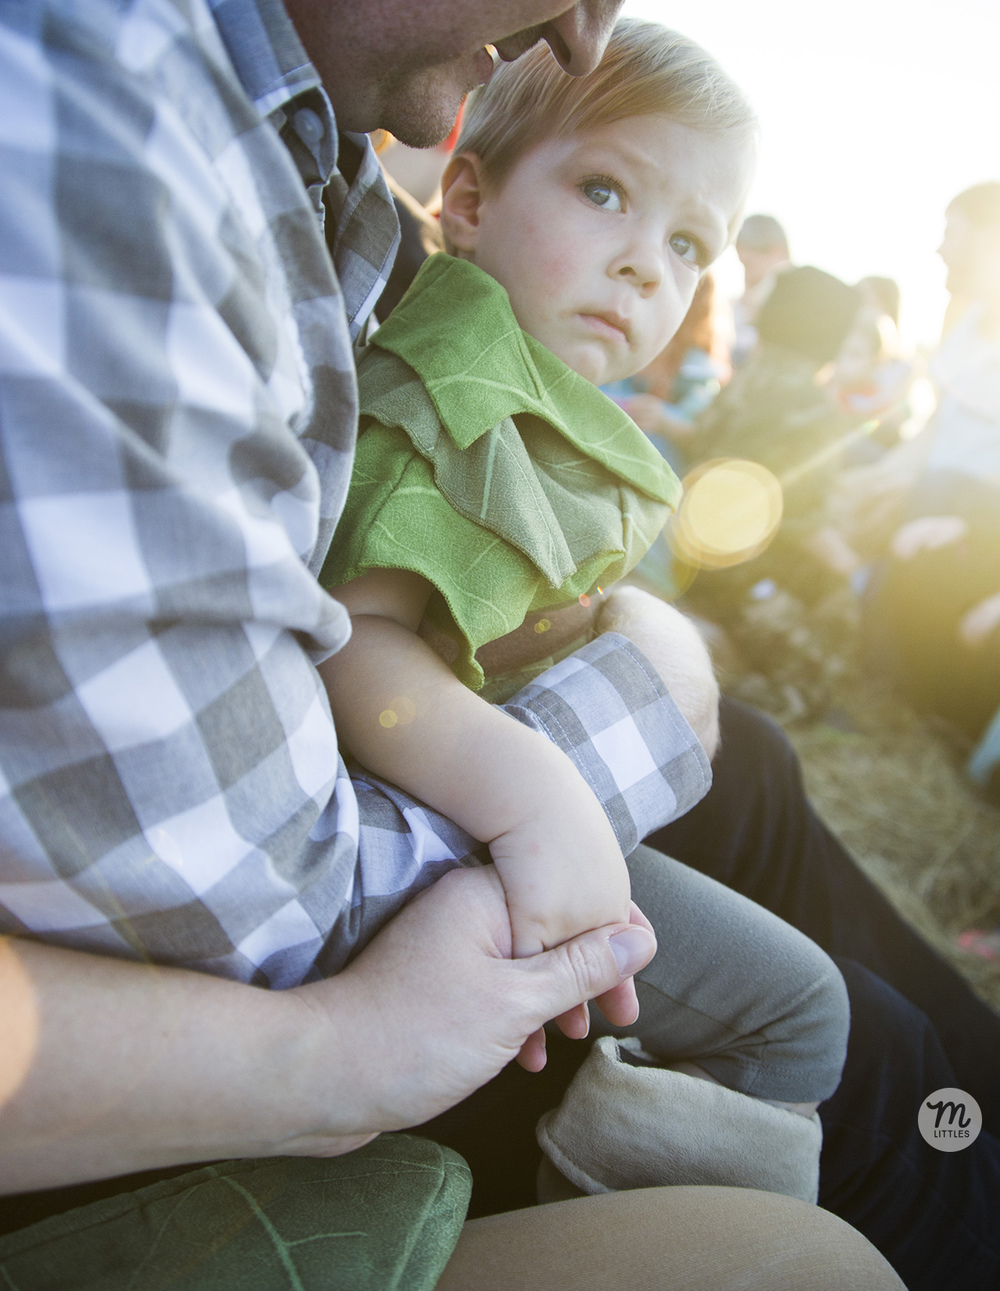 He was really nervous for the first few minutes of the hayride--having to sit in daddy's lap and hold my hand!